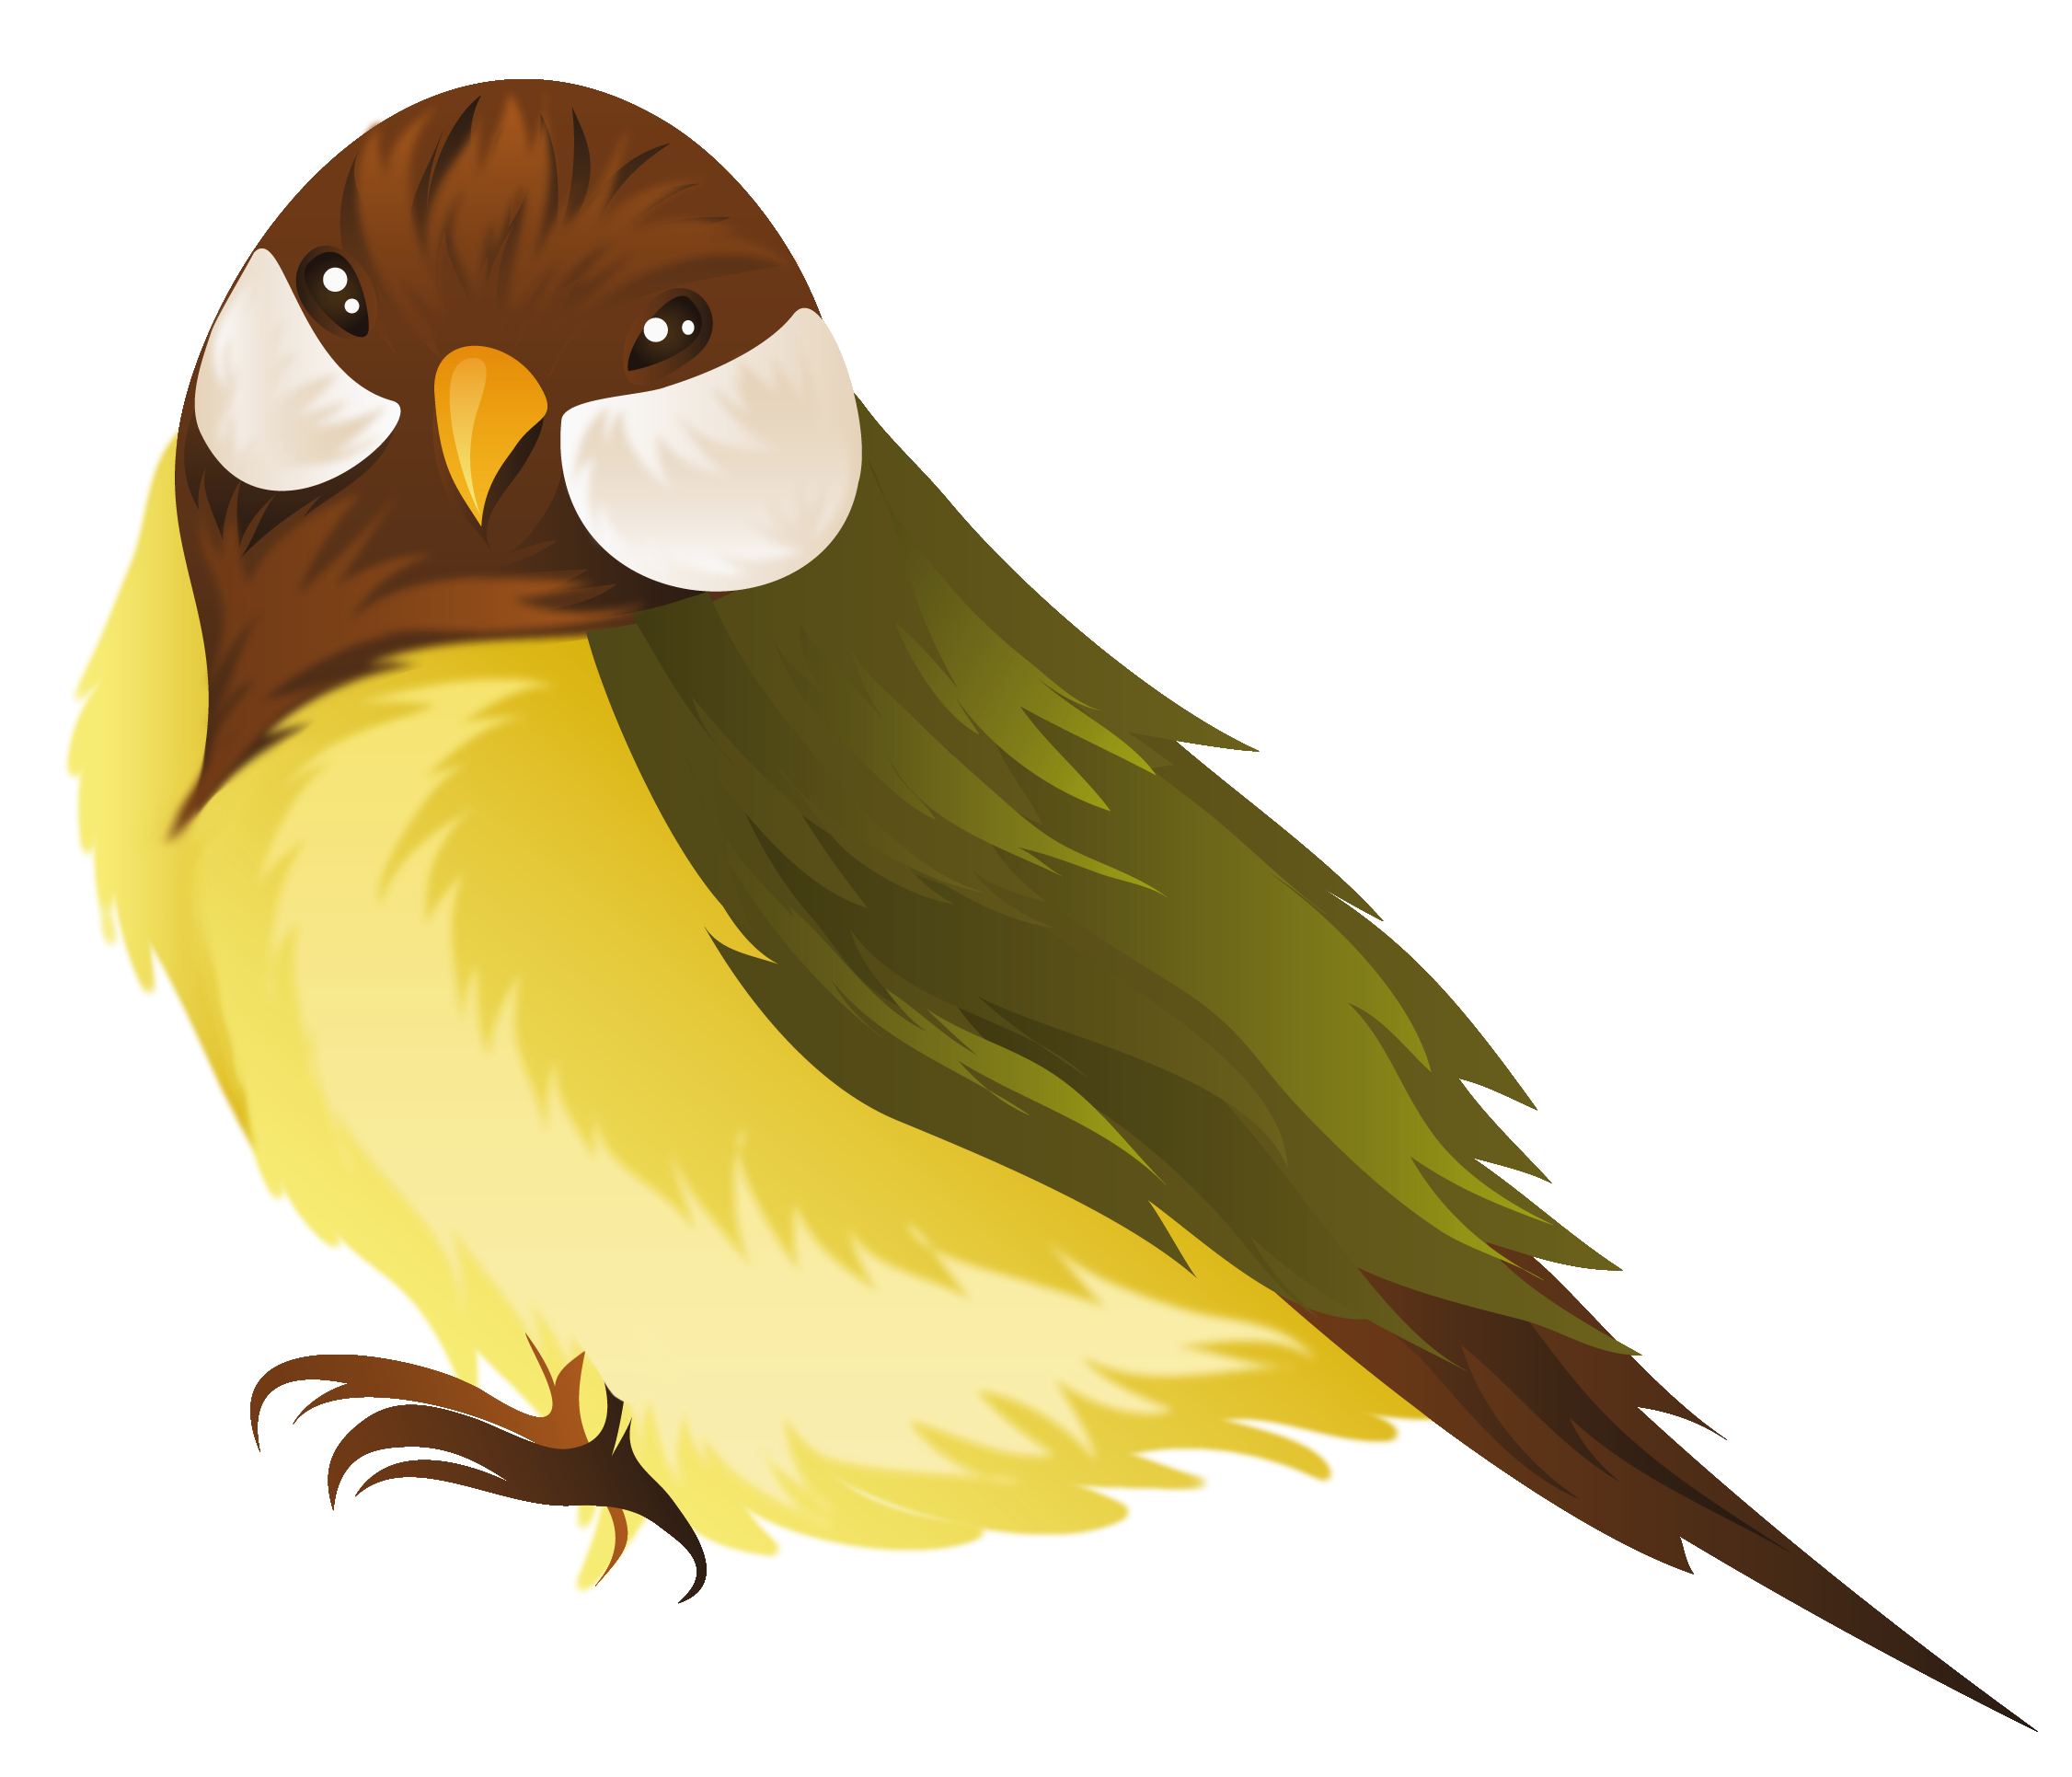 Png image gallery yopriceville. Outside clipart bird